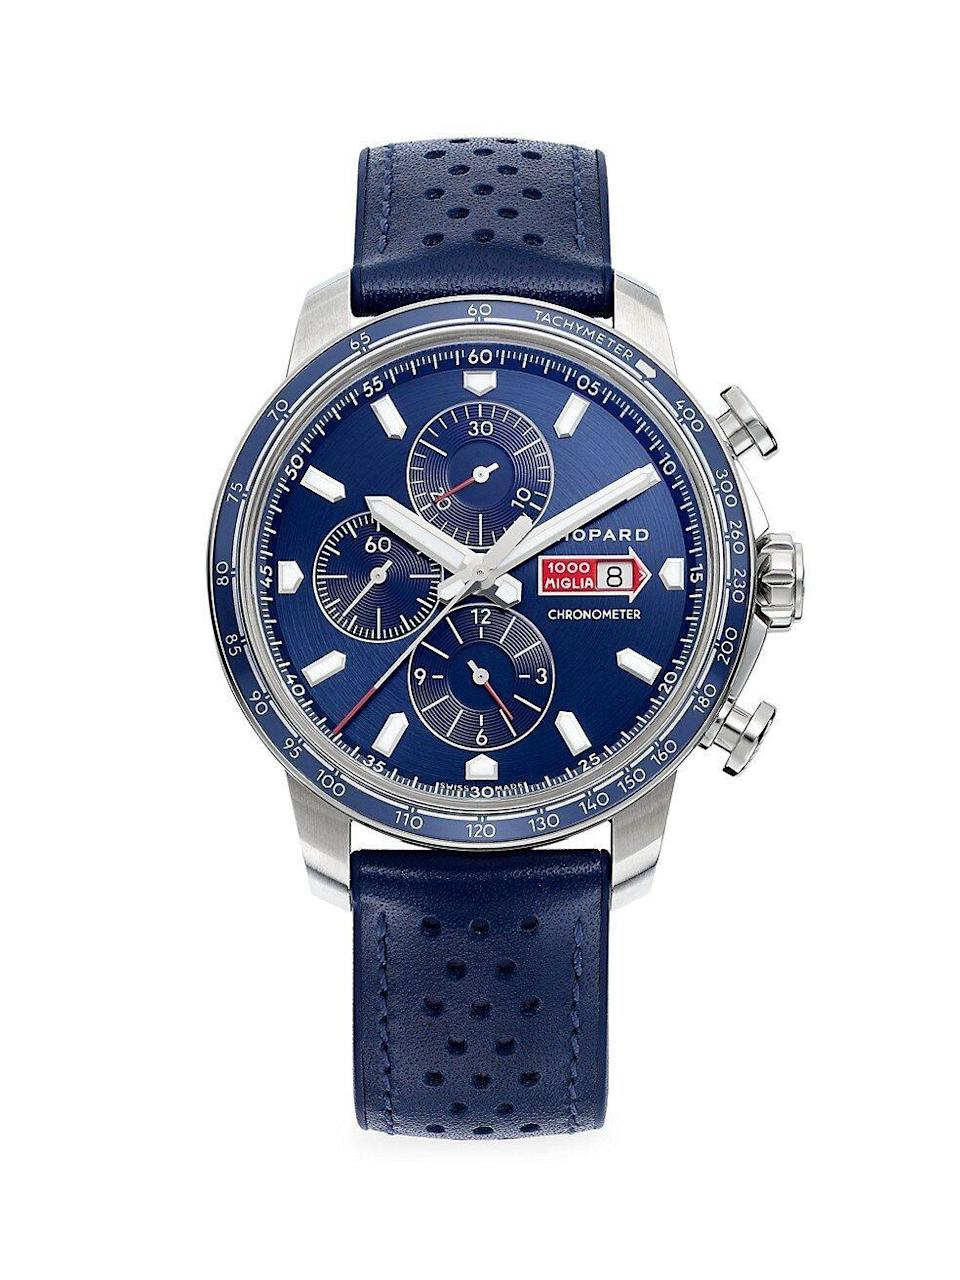 """<p><strong>Chopard</strong></p><p>saksfifthavenue.com</p><p><strong>$7400.00</strong></p><p><a href=""""https://go.redirectingat.com?id=74968X1596630&url=https%3A%2F%2Fwww.saksfifthavenue.com%2Fproduct%2Fchopard-classic-racing-mille-miglia-gts-azzurro-chrono-stainless-steel--amp--leather-strap-watch-12725627.html&sref=https%3A%2F%2Fwww.townandcountrymag.com%2Fstyle%2Fjewelry-and-watches%2Fg14418271%2Fbest-mens-luxury-watches%2F"""" rel=""""nofollow noopener"""" target=""""_blank"""" data-ylk=""""slk:Shop Now"""" class=""""link rapid-noclick-resp"""">Shop Now</a></p><p>Cast in stainless steel with a perforated blue leather strap, this self-winding watch is just as cool as it is casual.</p><p>Case size: 44mm</p>"""